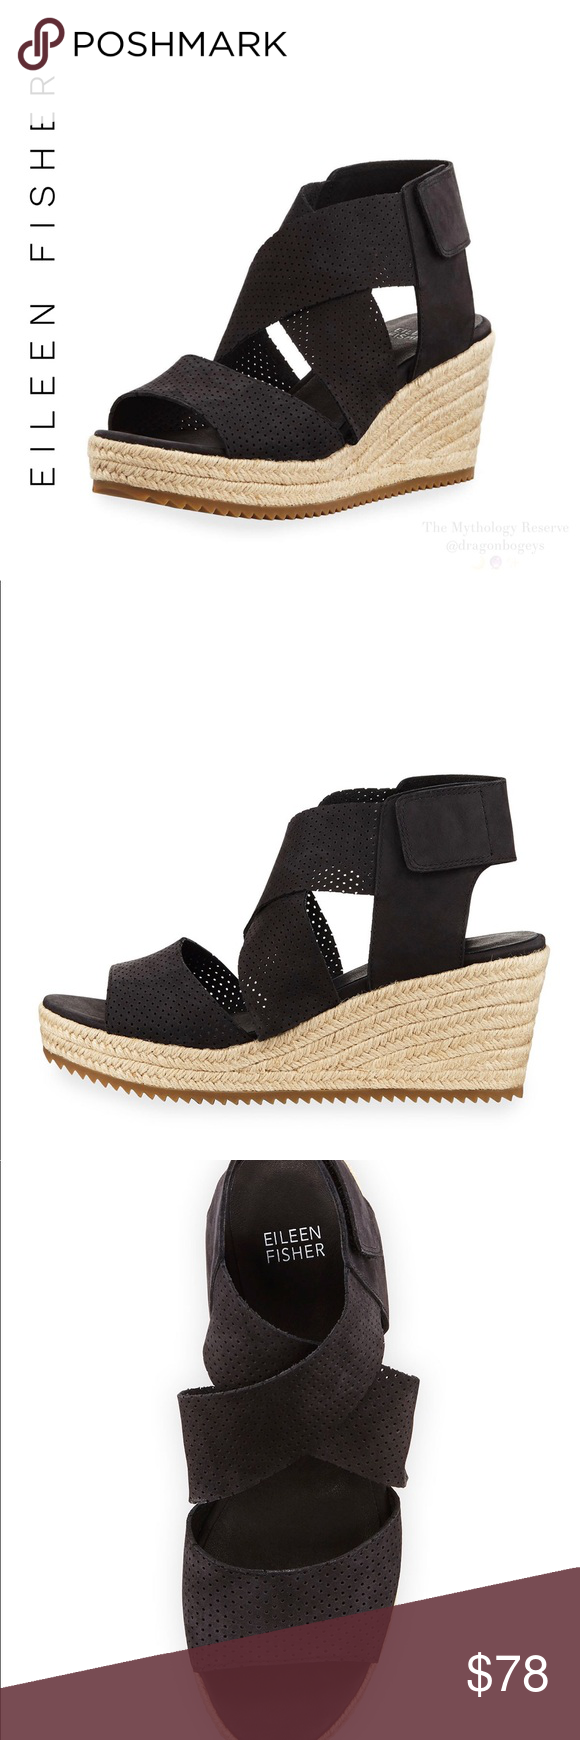 1547b555cfcf Eileen Fisher Willow Espadrille Sandals Eileen Fisher perforated nubuck  leather espadrille sandals with wide crisscrossing straps